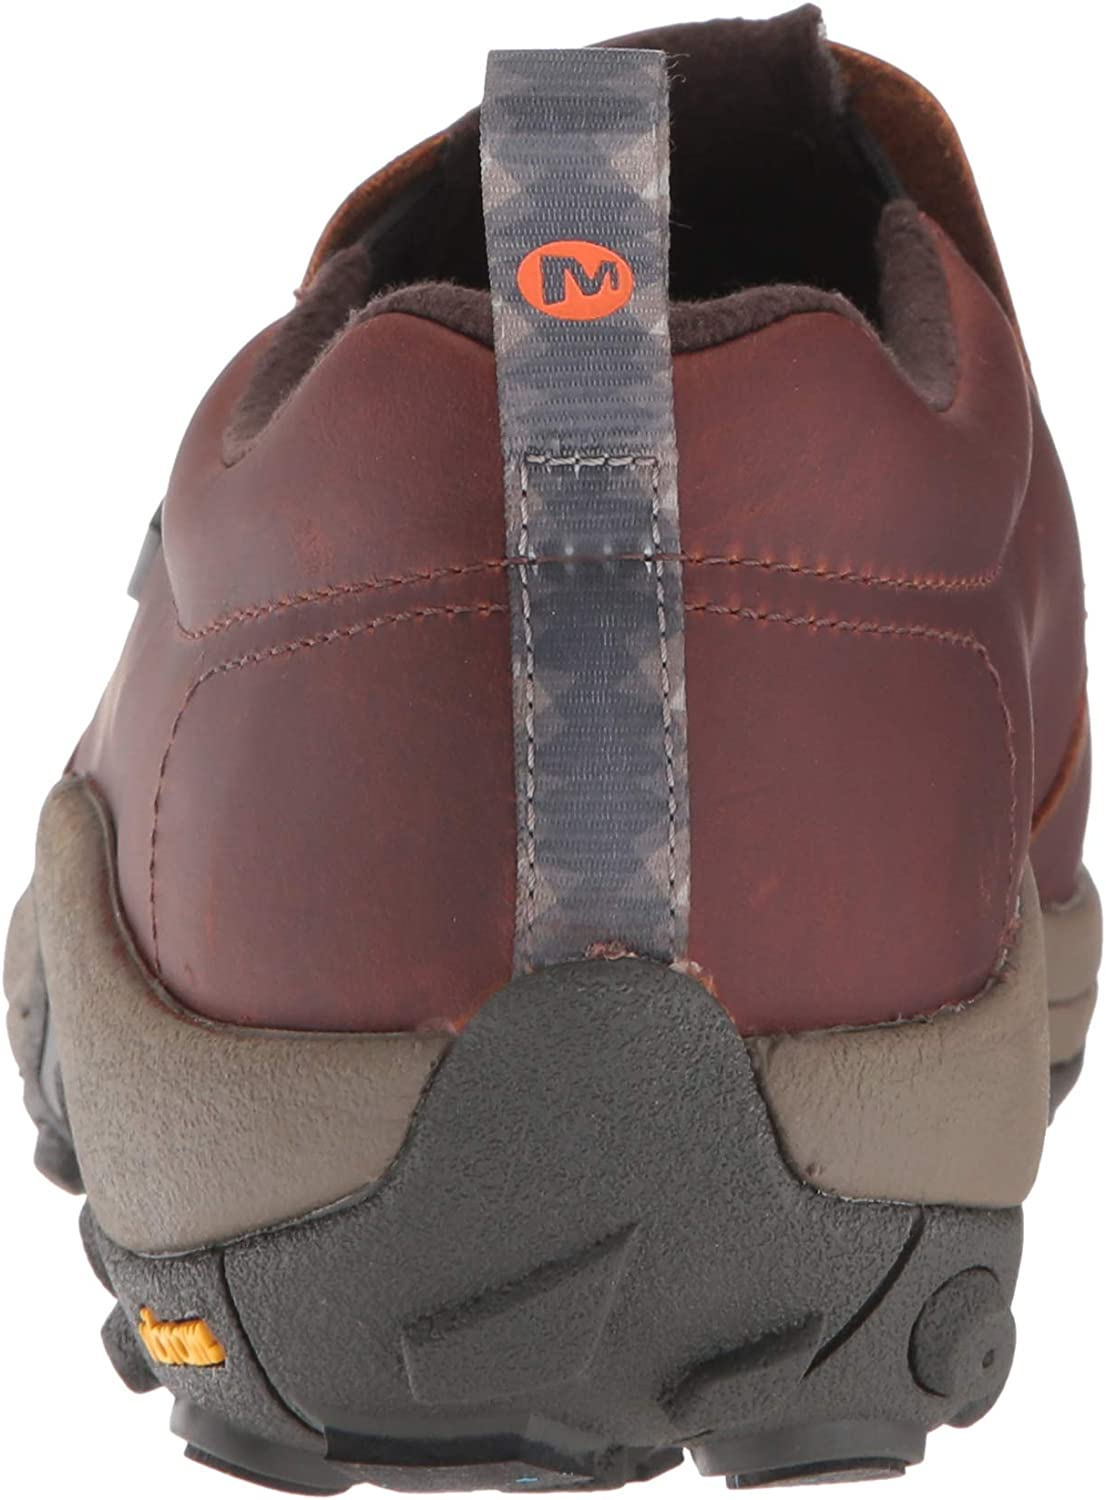 Moccasin Merrell Mens Jungle Moc Leather Waterproof Ice